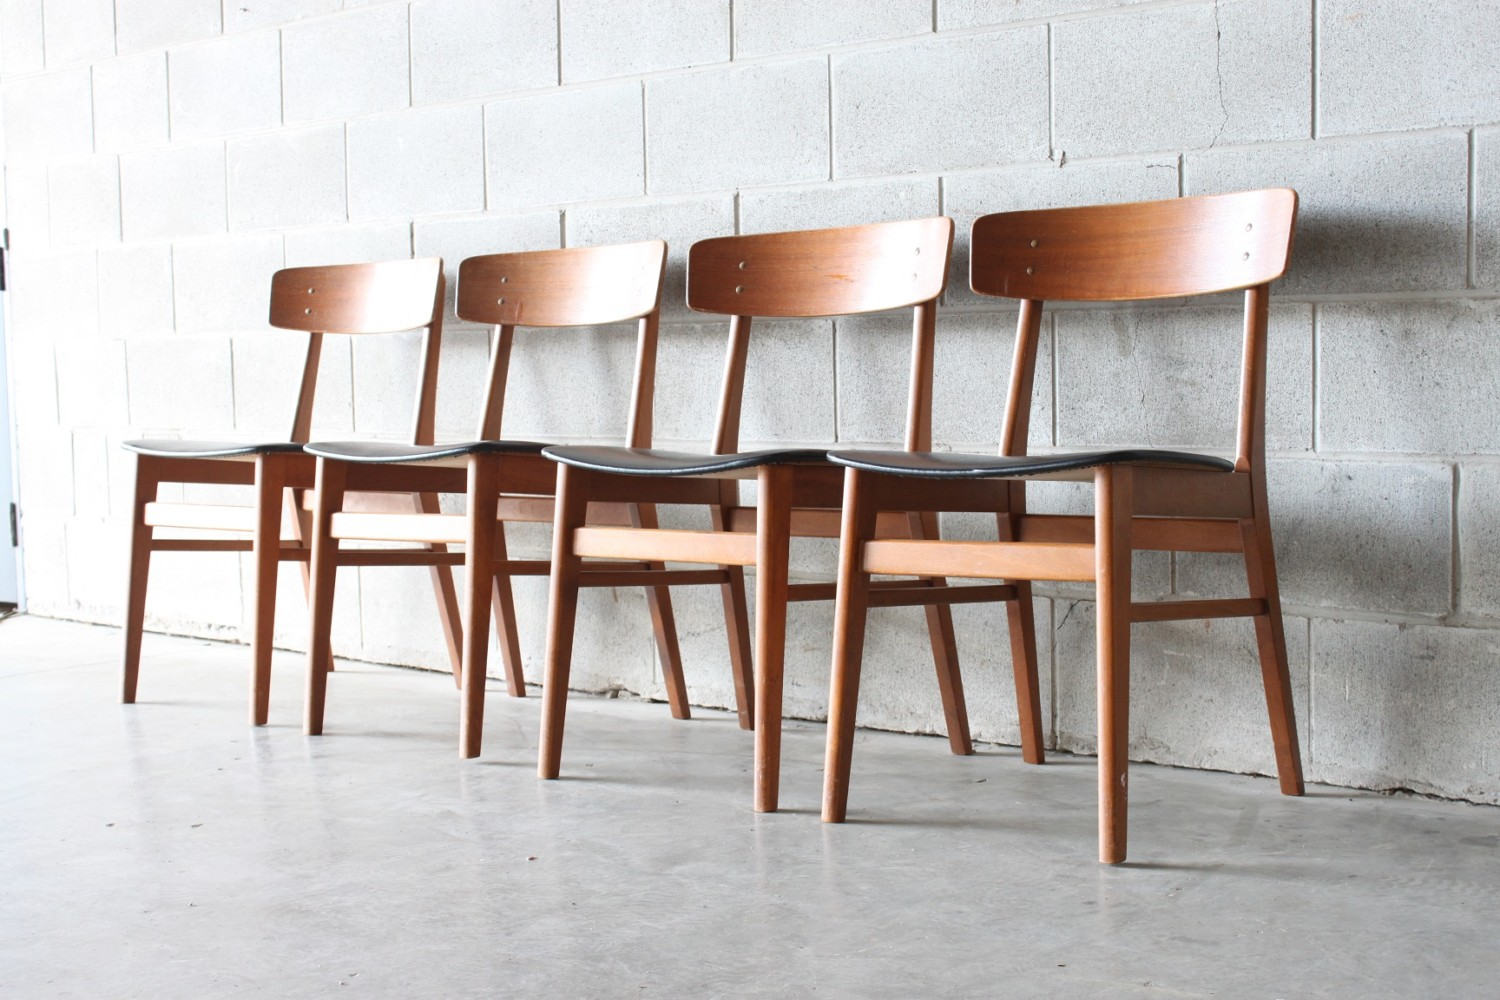 Teak Dining Chairs By Farstrup Mobelfabrik x4